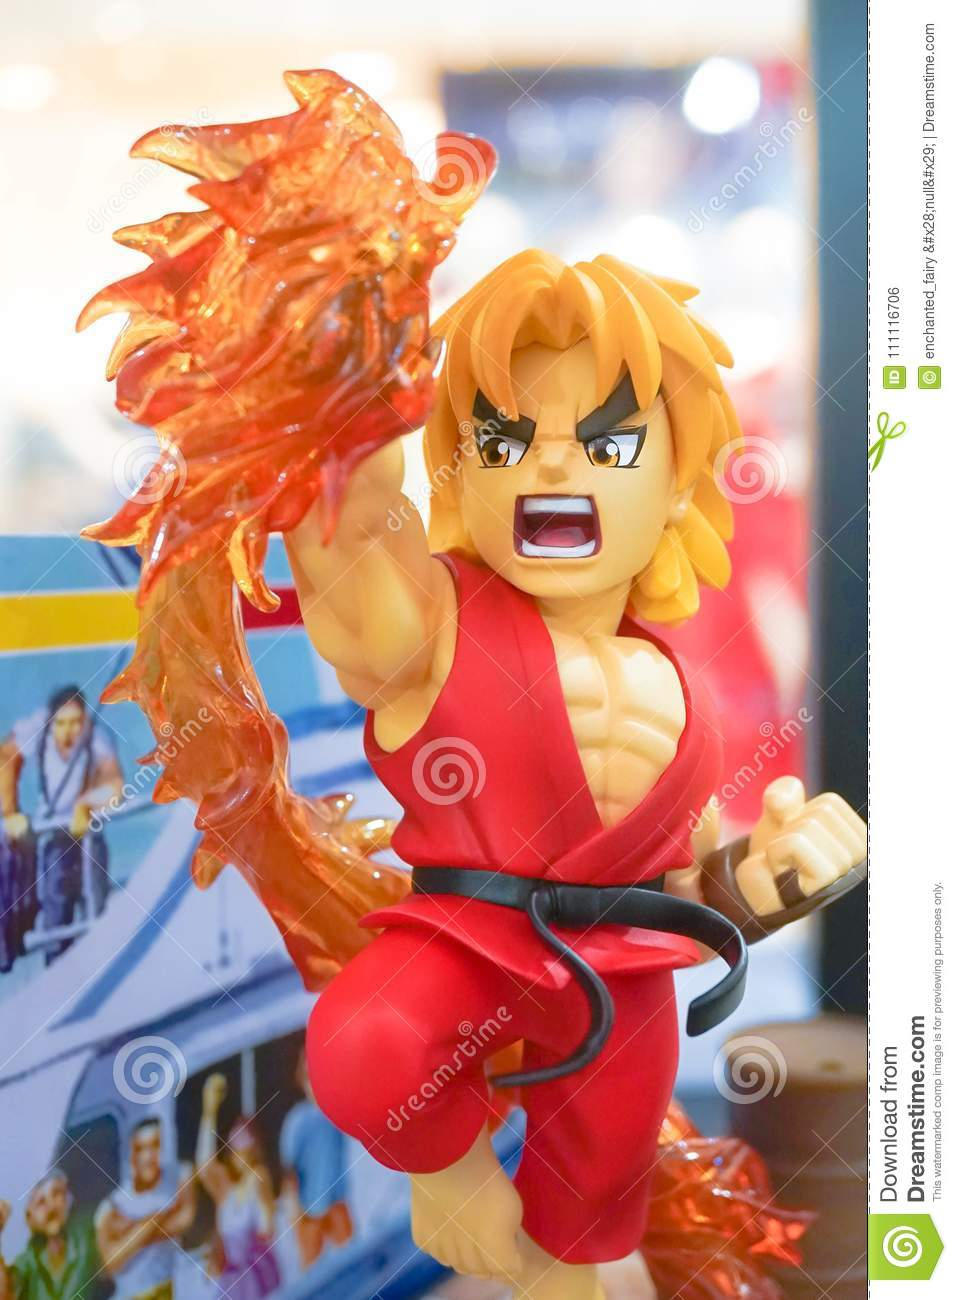 Shoryuken Mascot Toy Model, A Character From Street Fighter